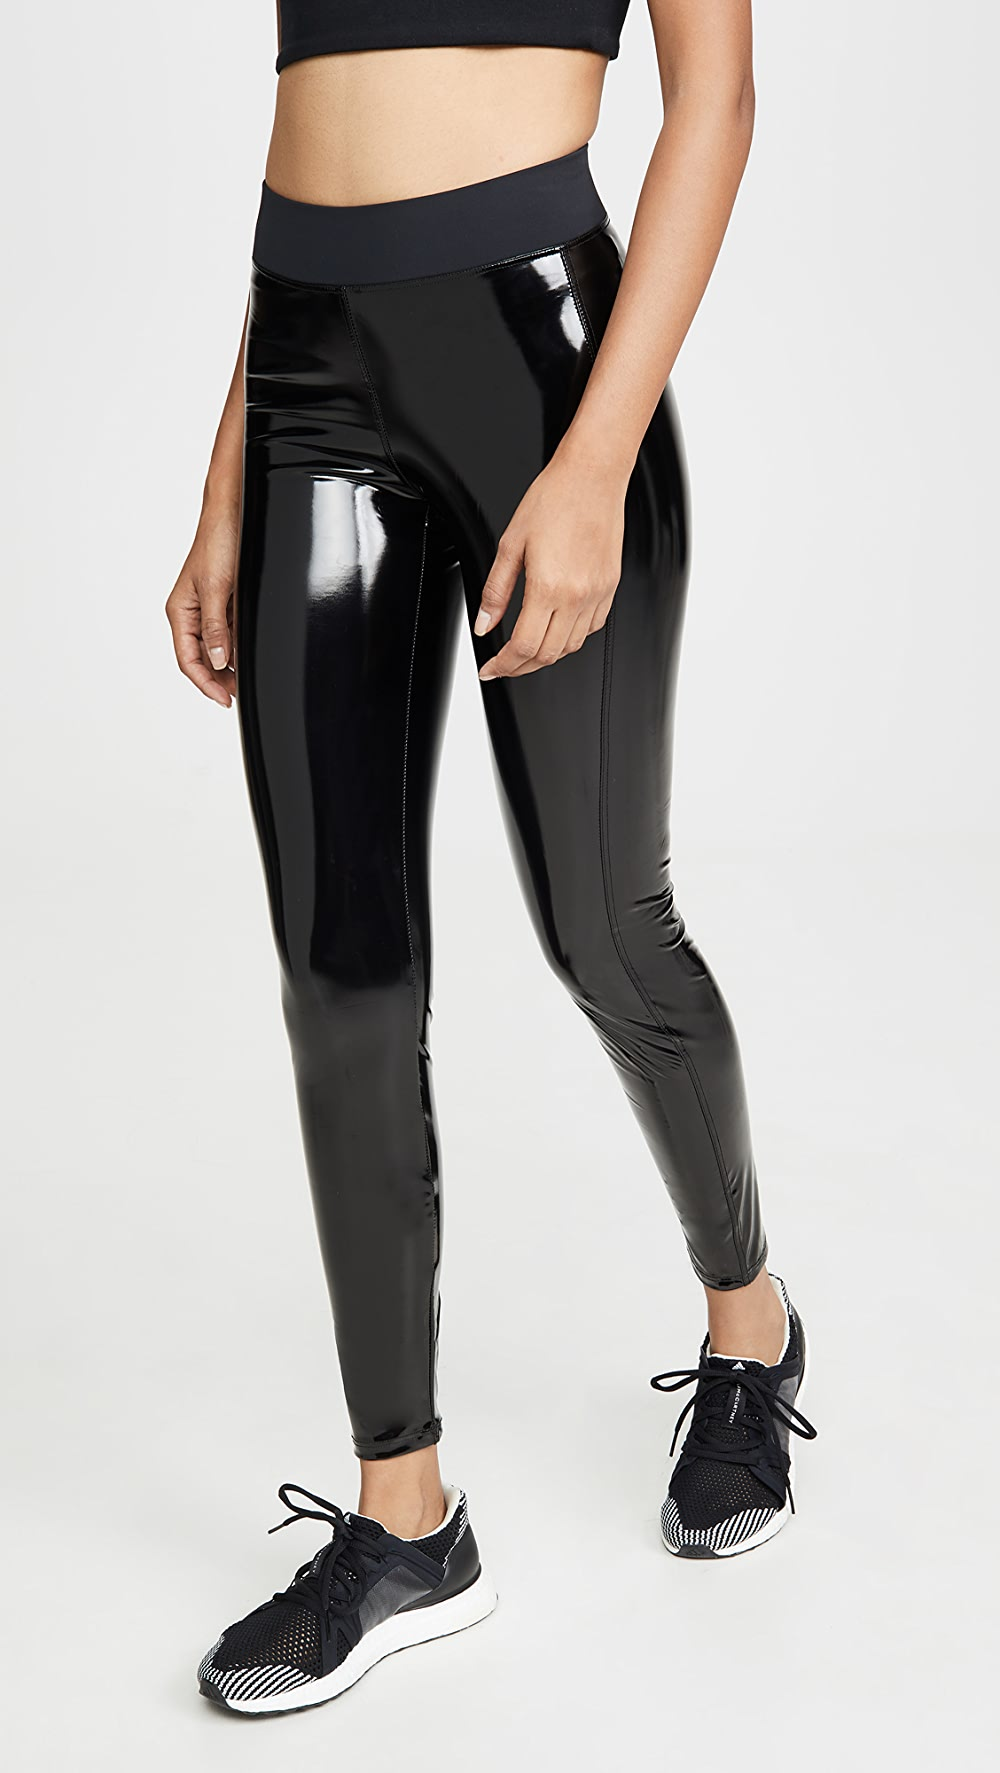 2019 New Style Heroine Sport - Downtown Leggings Goods Of Every Description Are Available